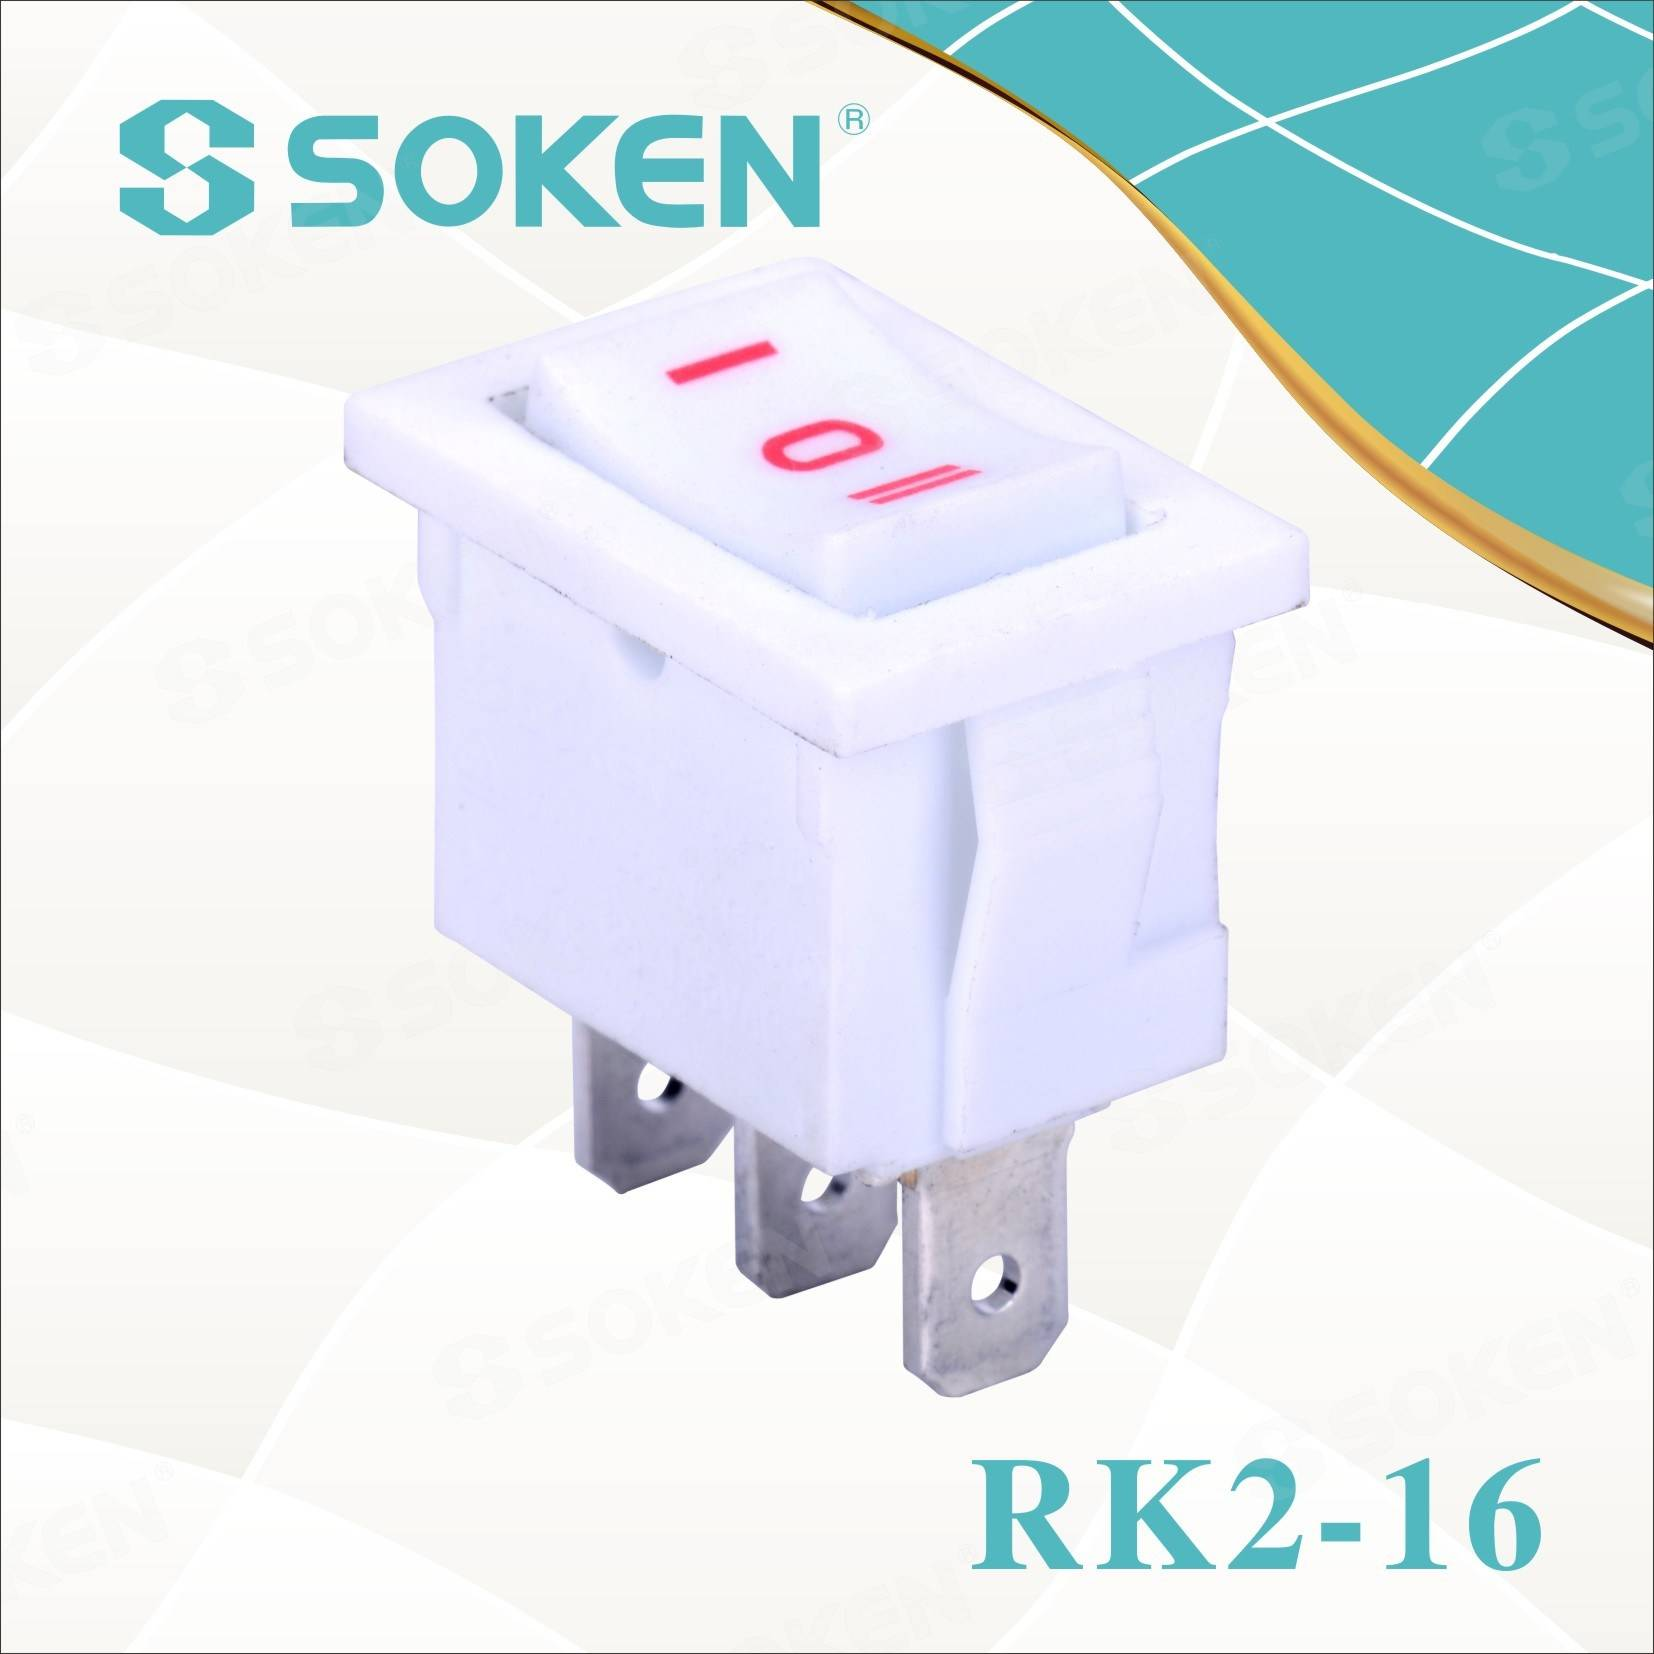 Sokne Rk2-16 1X3 na off na Rocker Switch